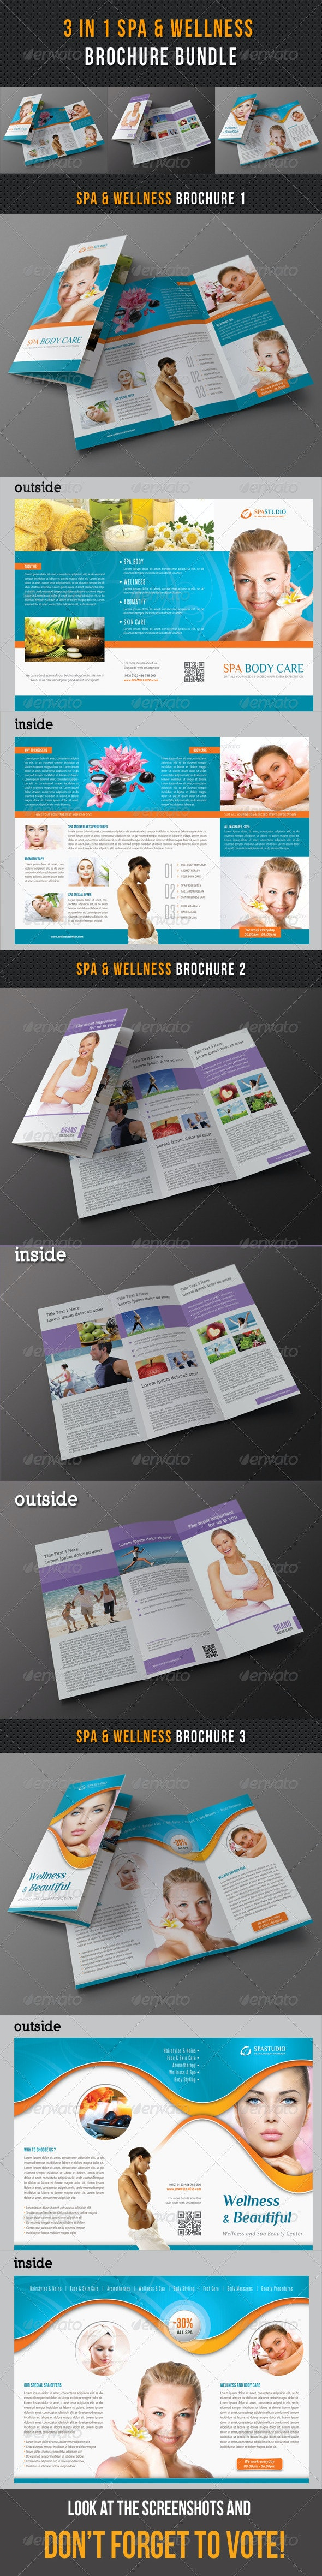 3 in 1 Spa Wellness Brochure Bundle 02 - Corporate Brochures